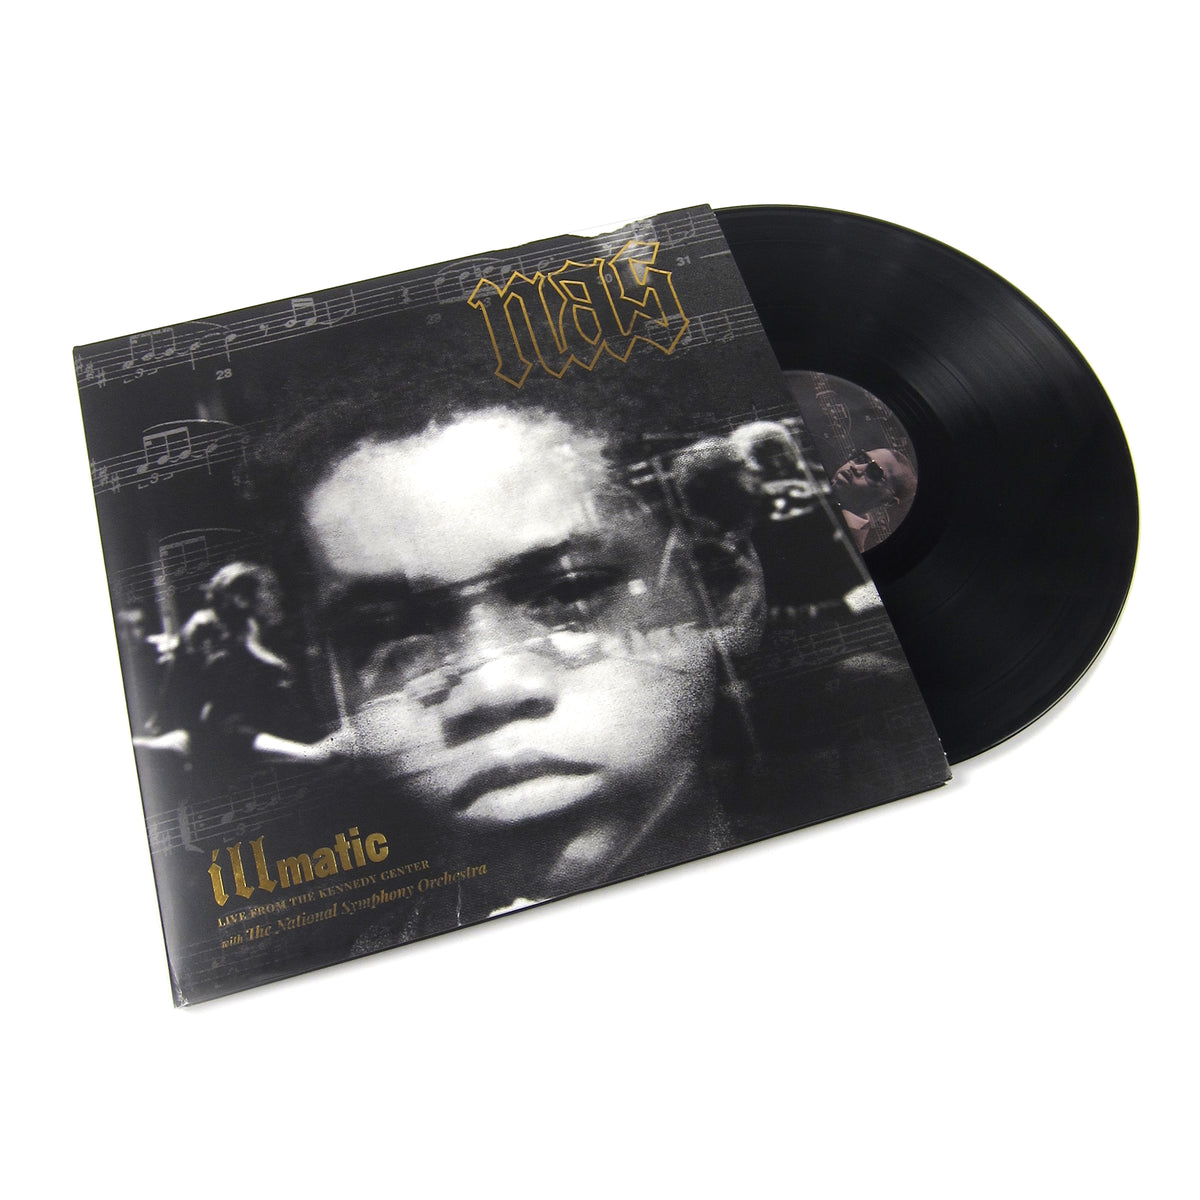 Nas: illmatic - Live From The Kennedy Center (180g) Vinyl 2LP (Record Store Day)